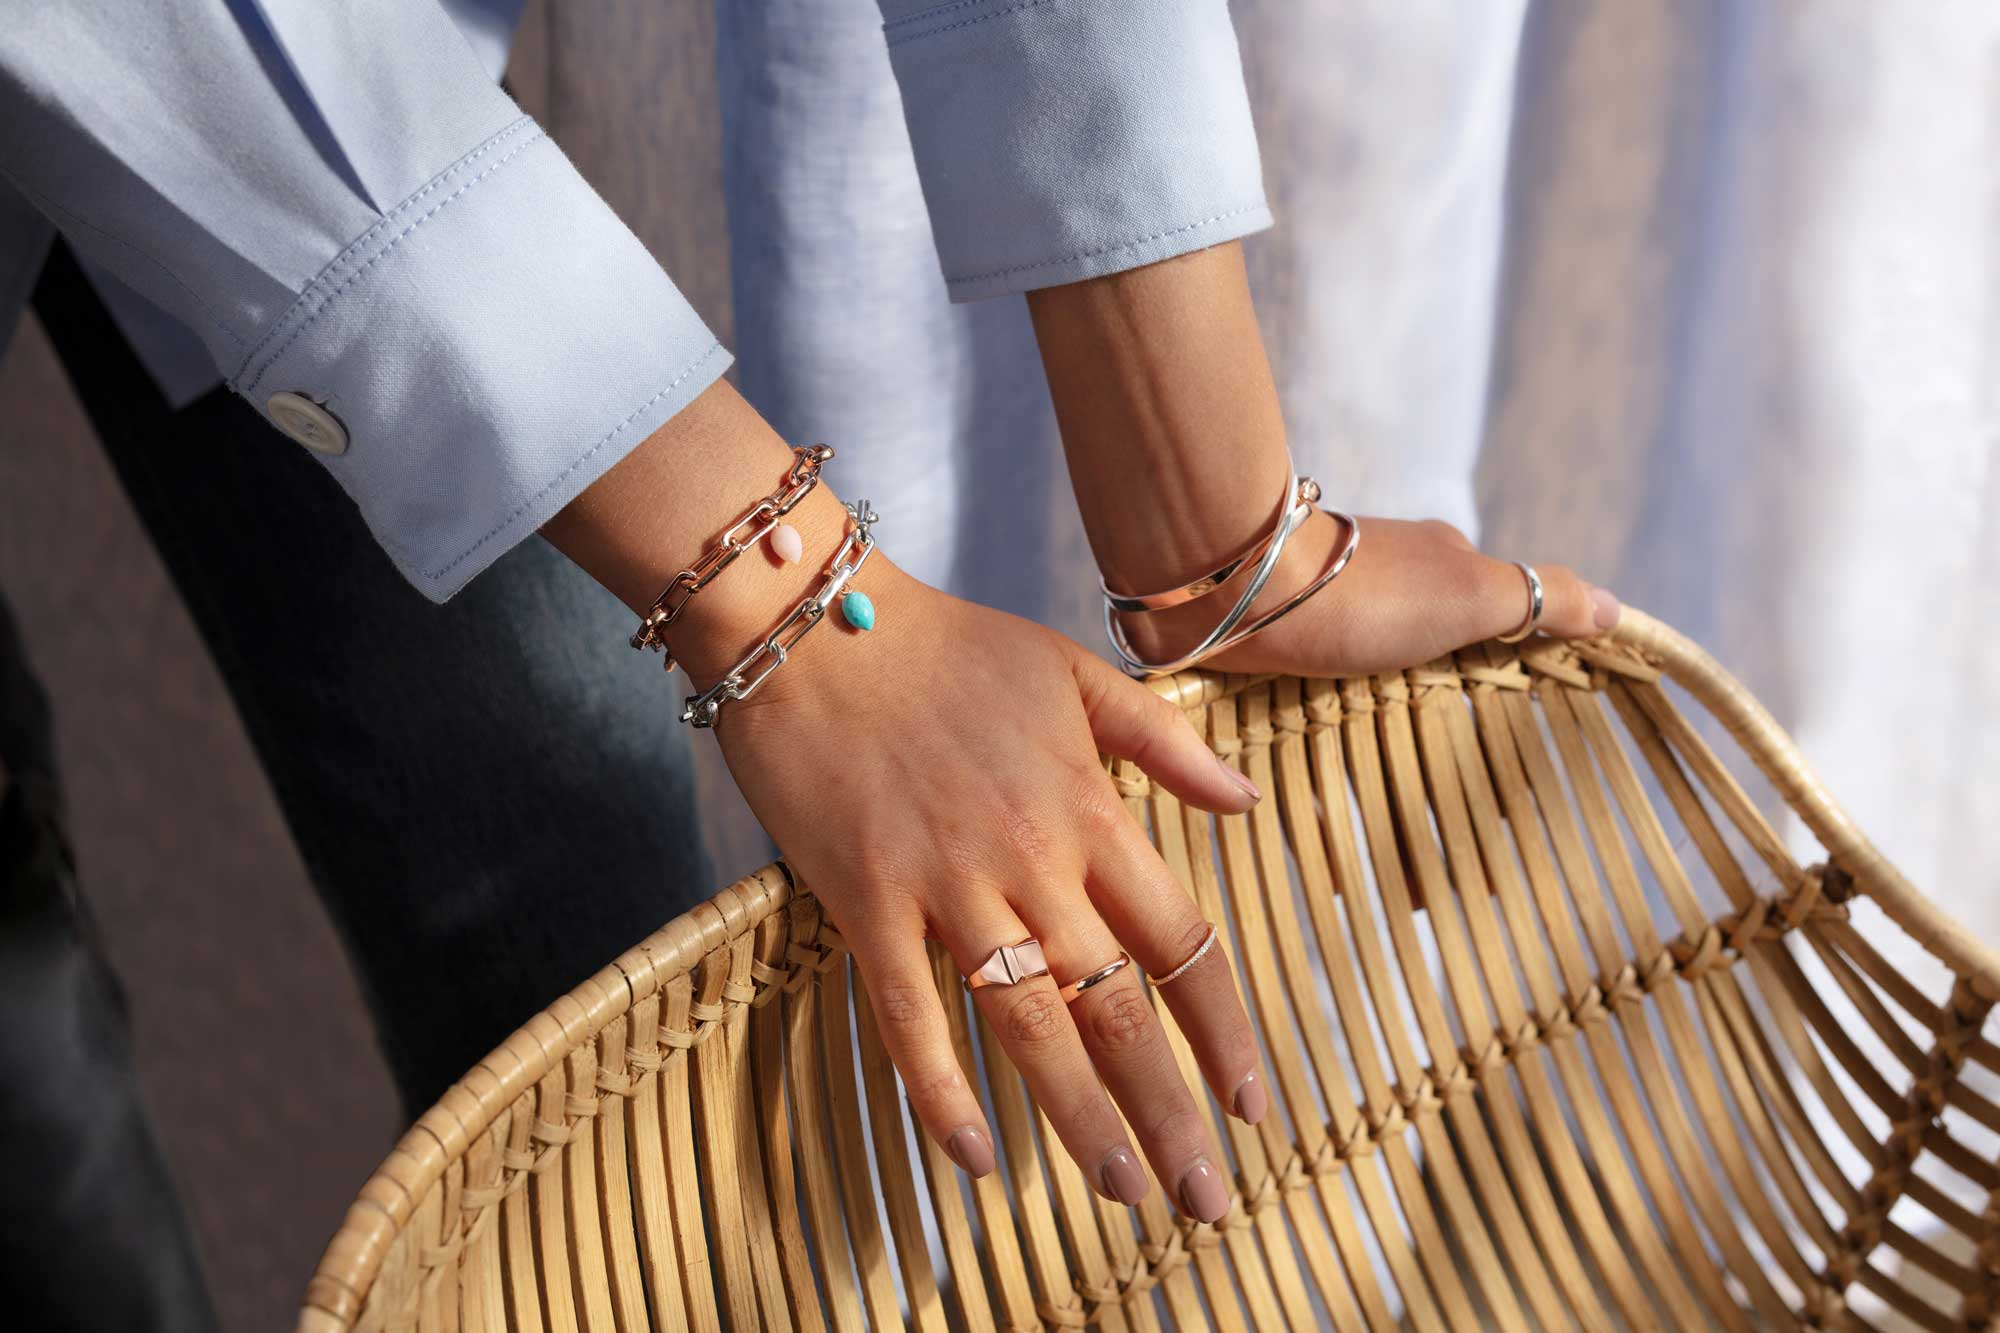 Hands over chair with Monica Vinader rings and bracelets